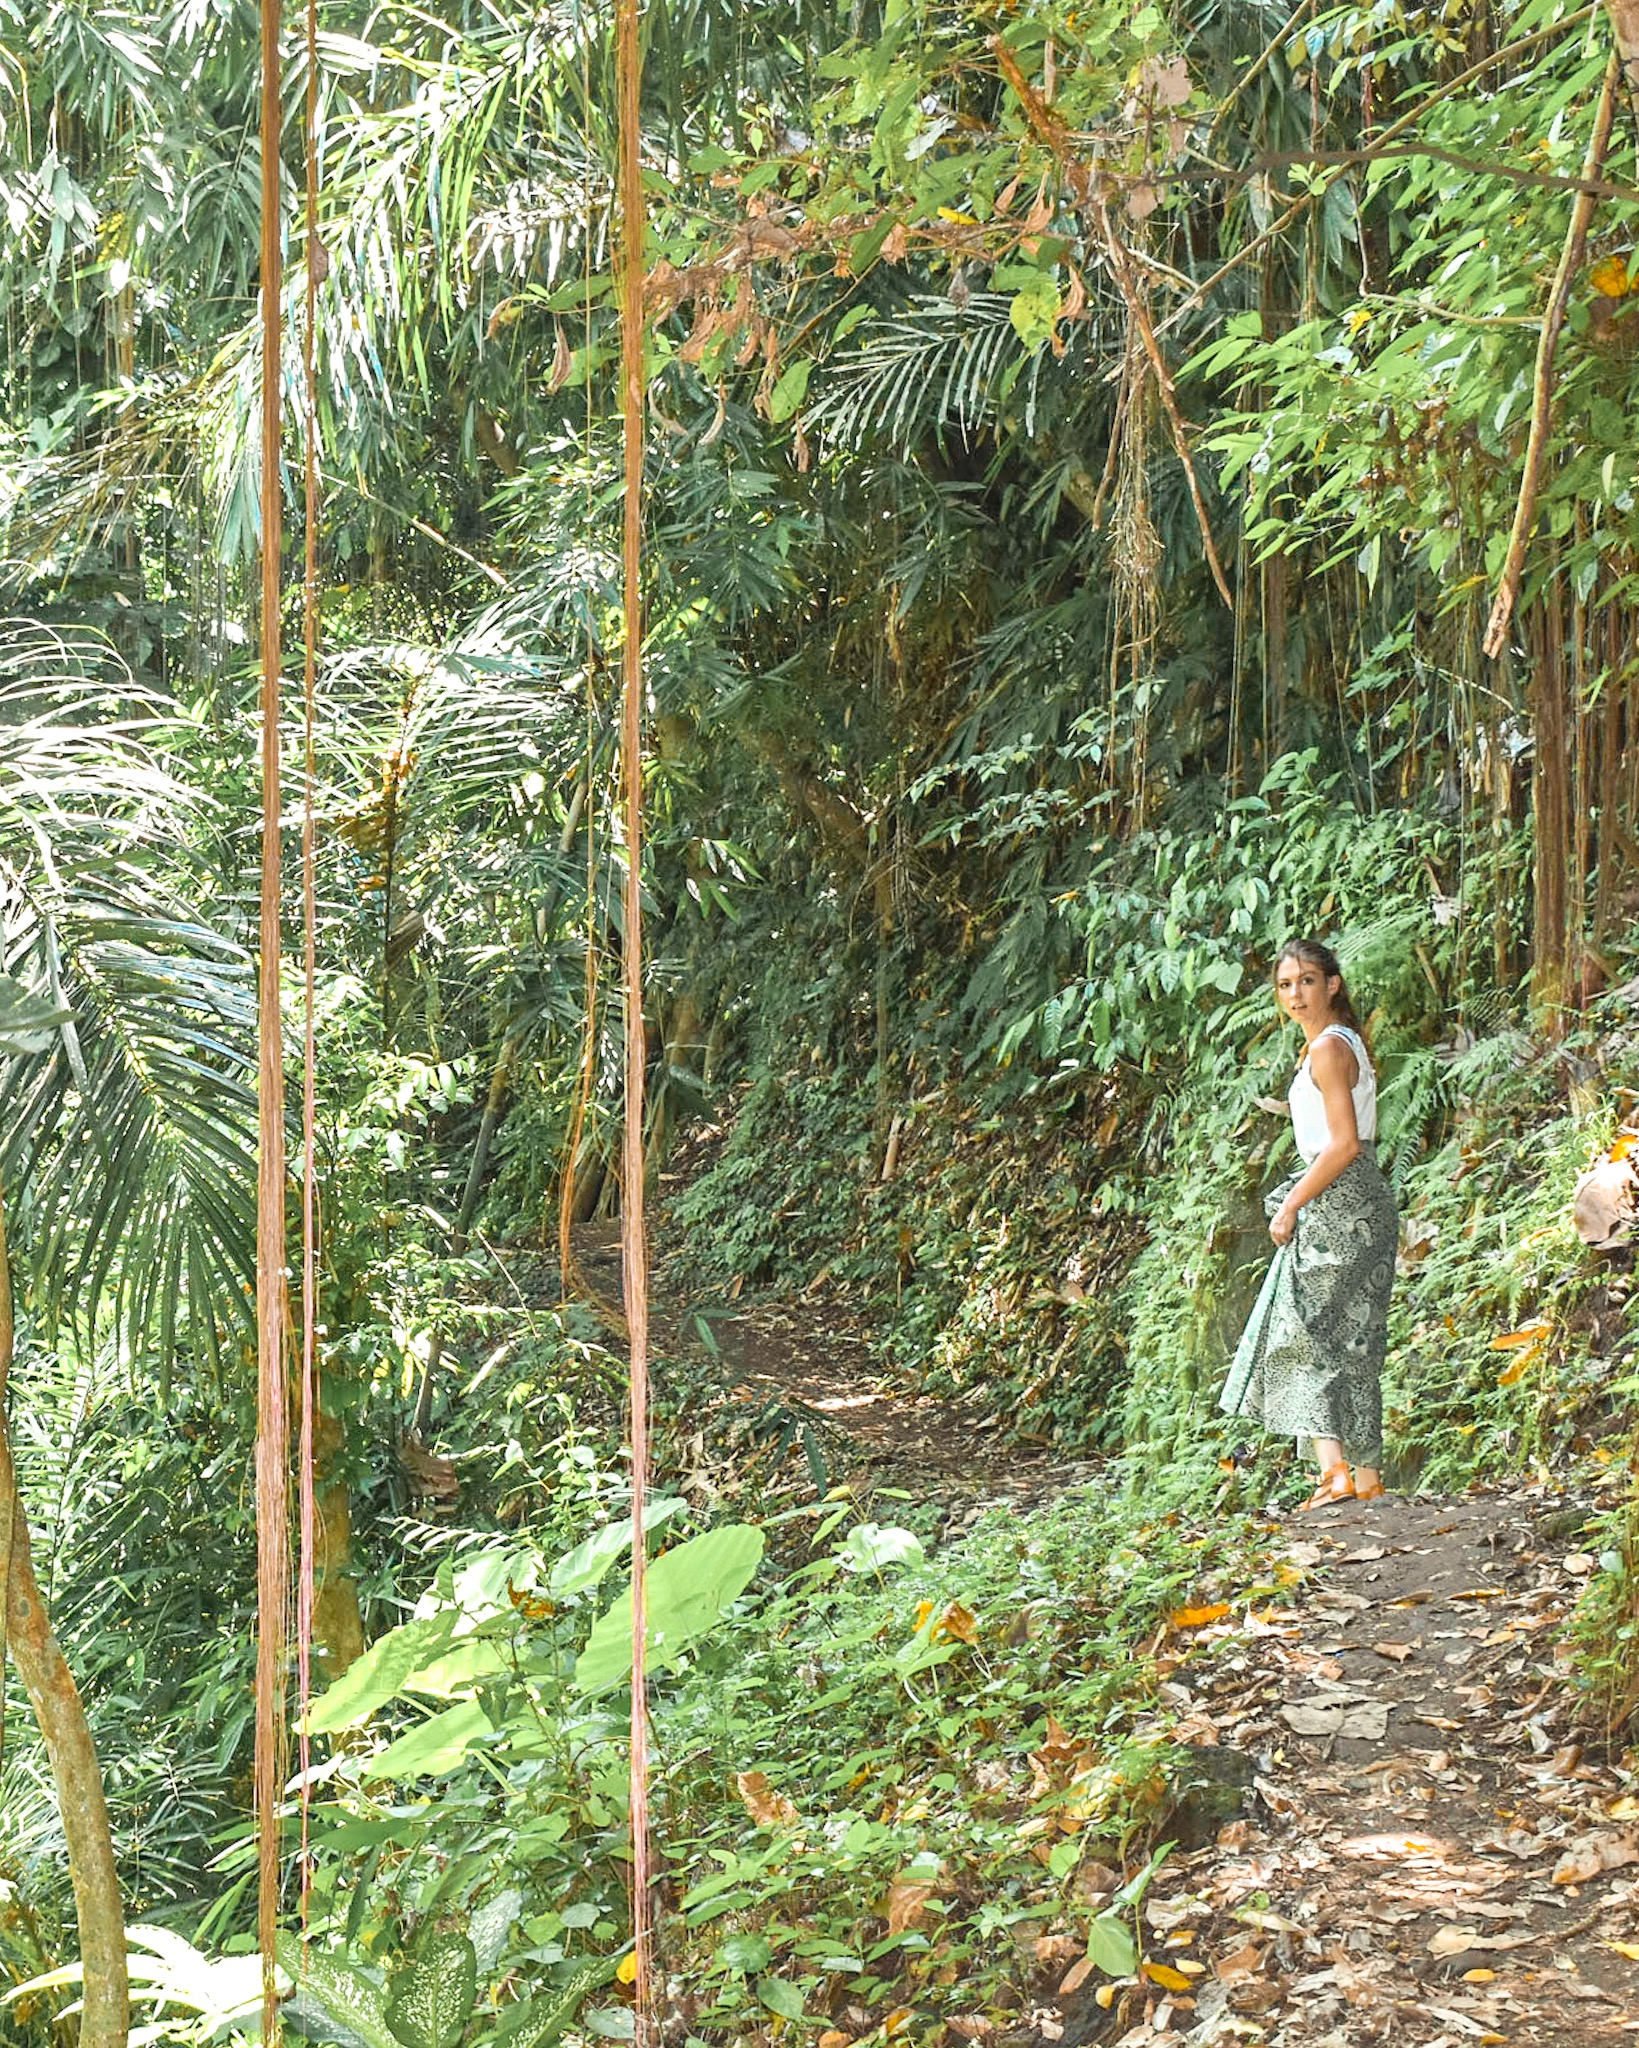 Woman Walks Through Jungle in Bali